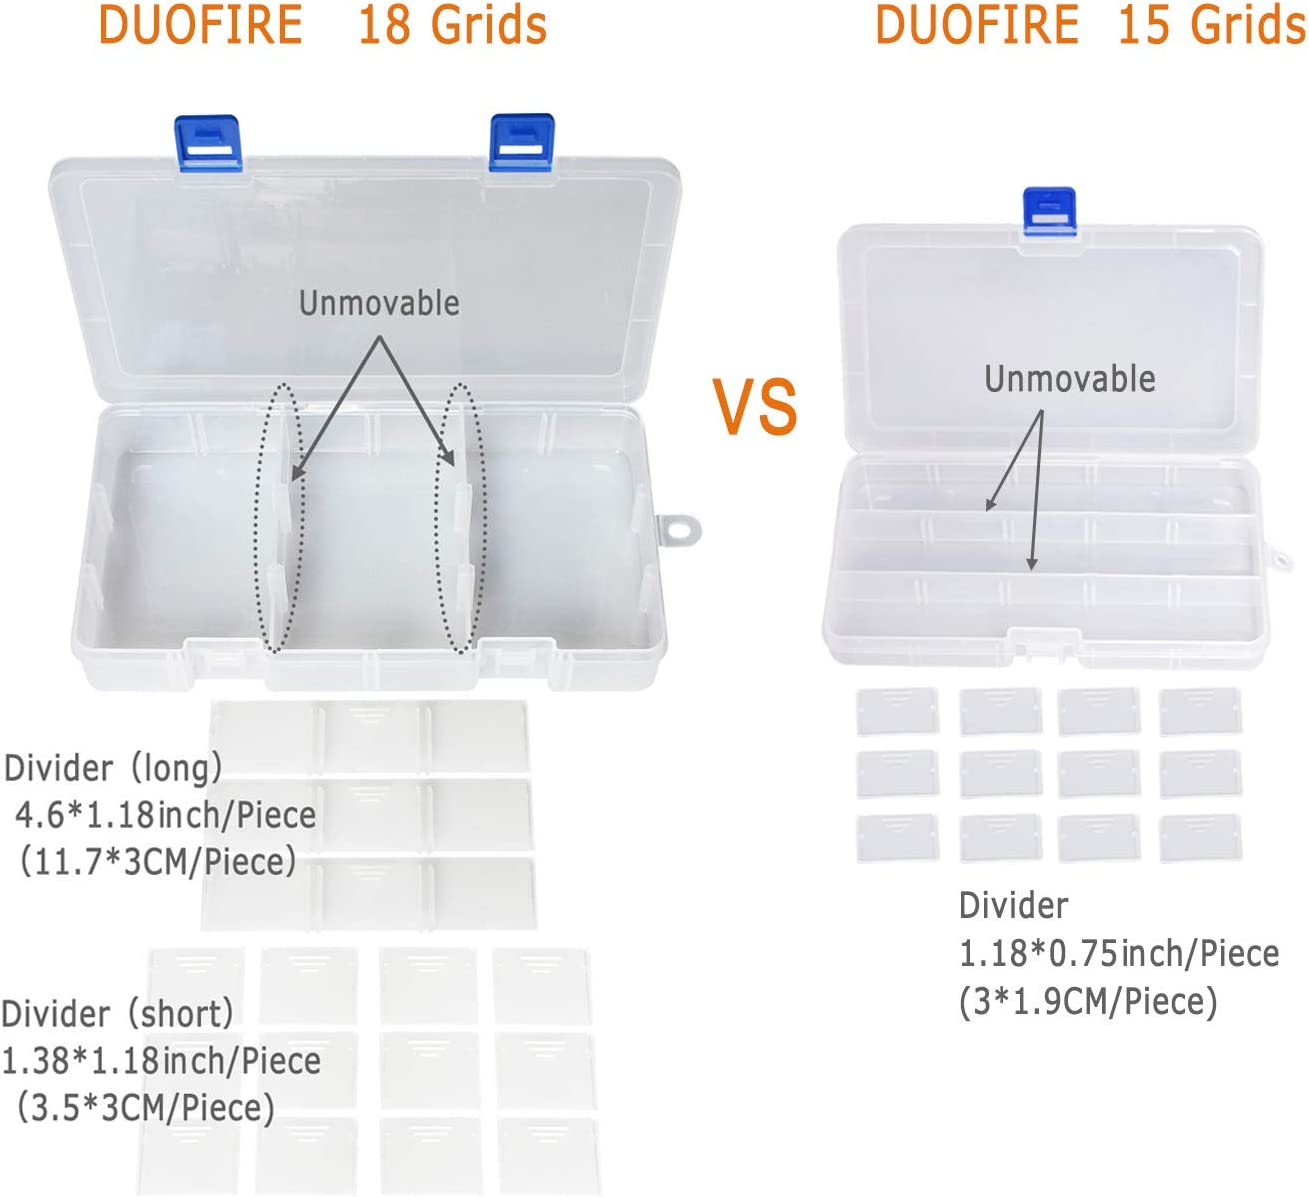 DUOFIRE Plastic Organizer Container Storage Box Adjustable Divider Removable Grid Compartment for Jewelry Beads Earring Tool Fishing Hook Small Accessories 18 grids, Pink-Blue